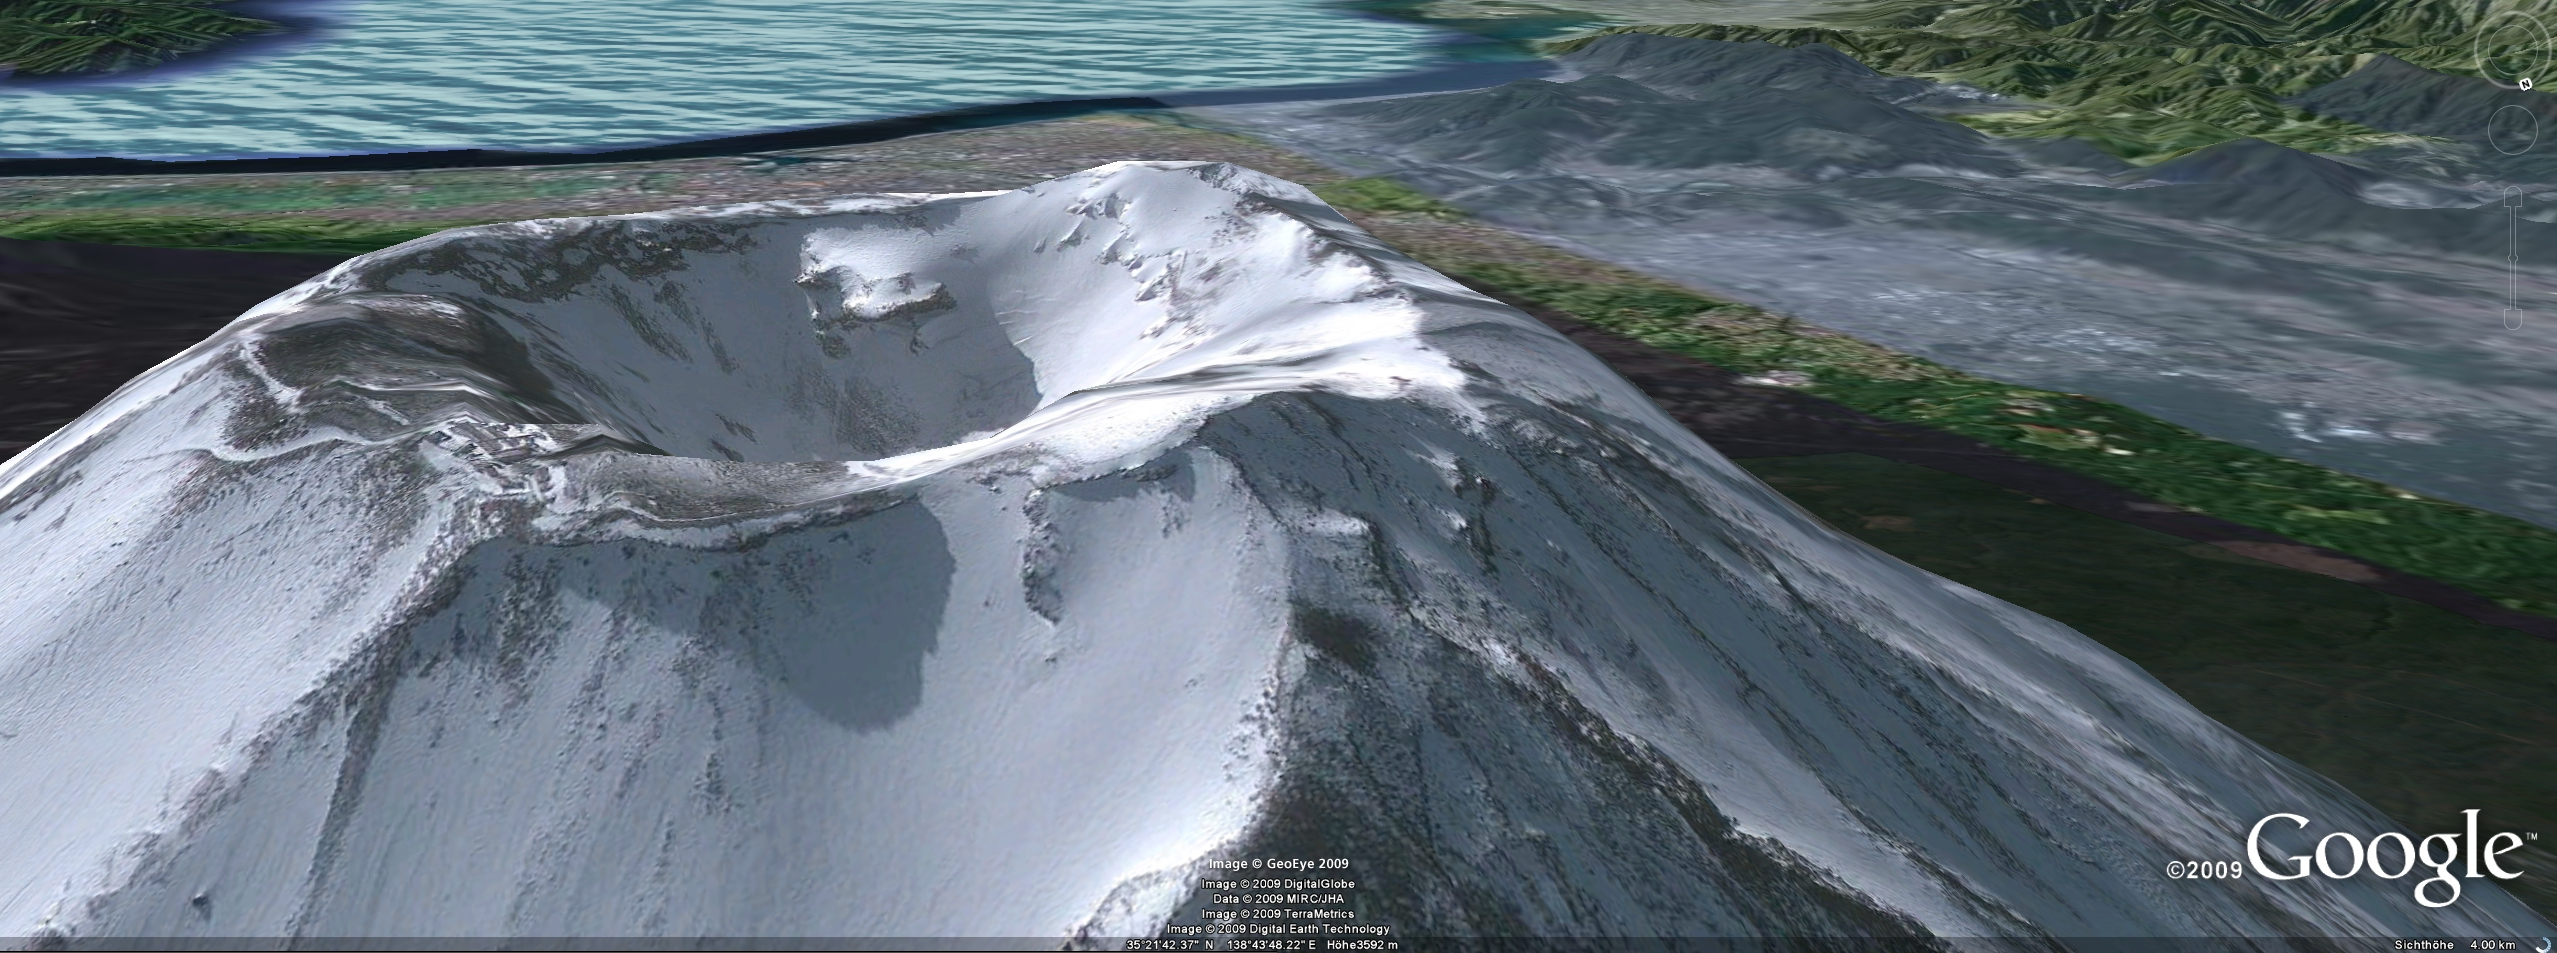 interessante orte google earth